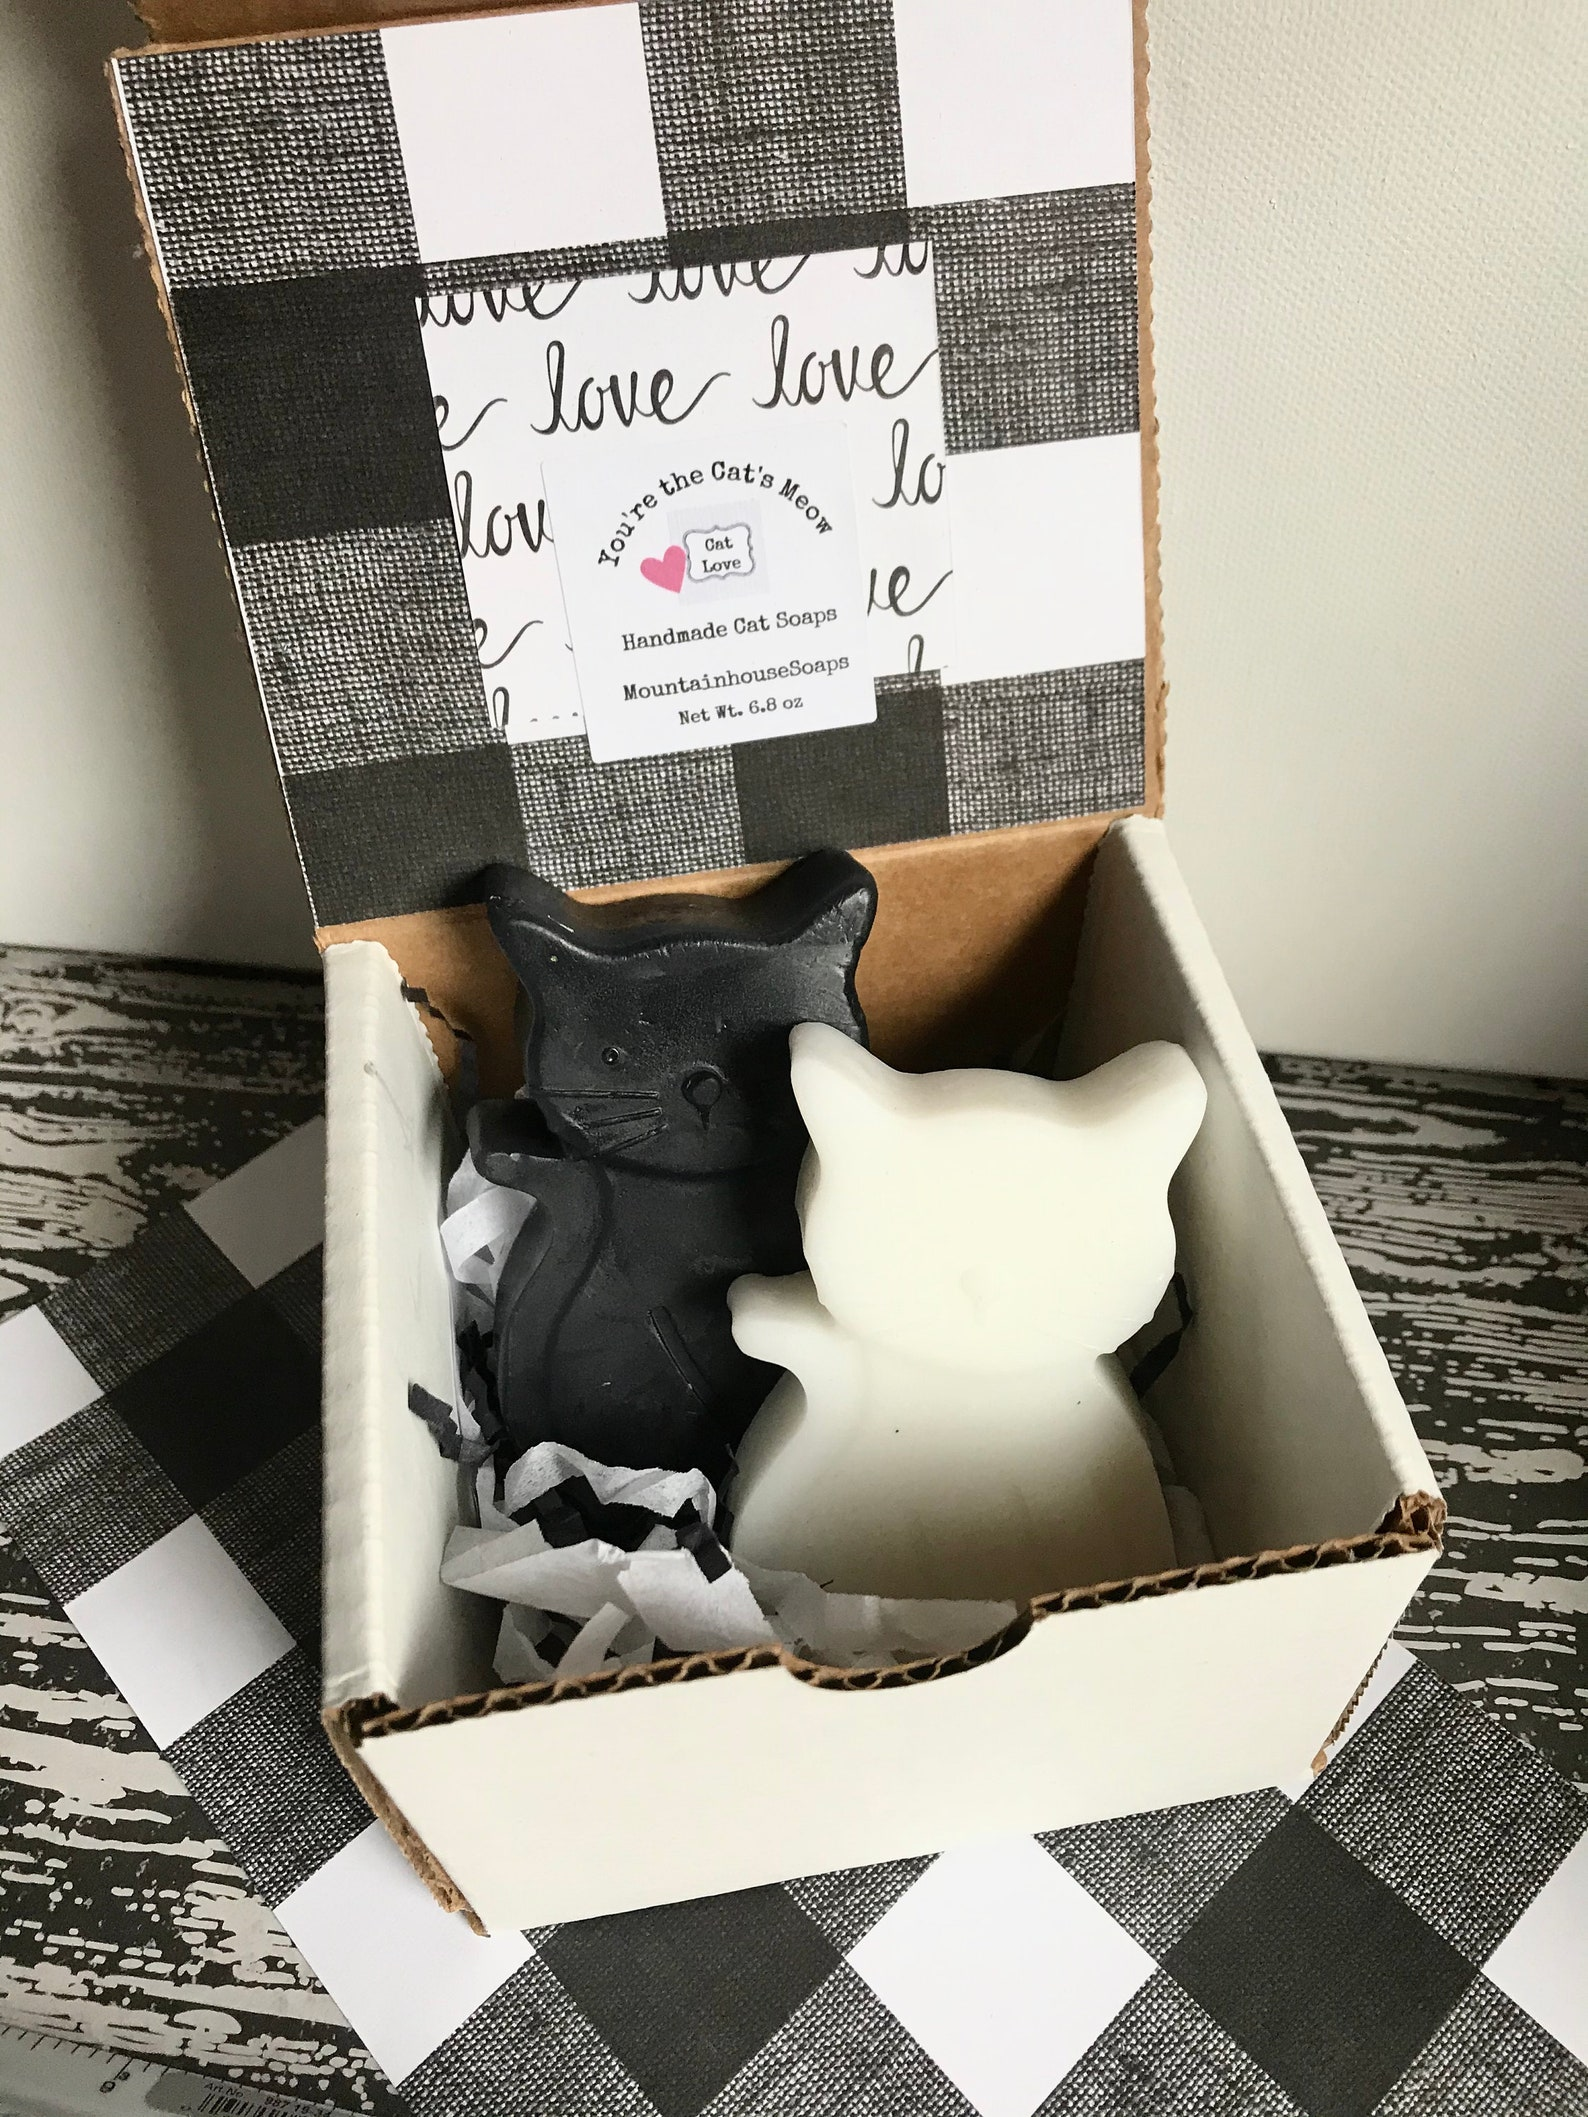 Black and White Cat Soaps, Gift Box of 2